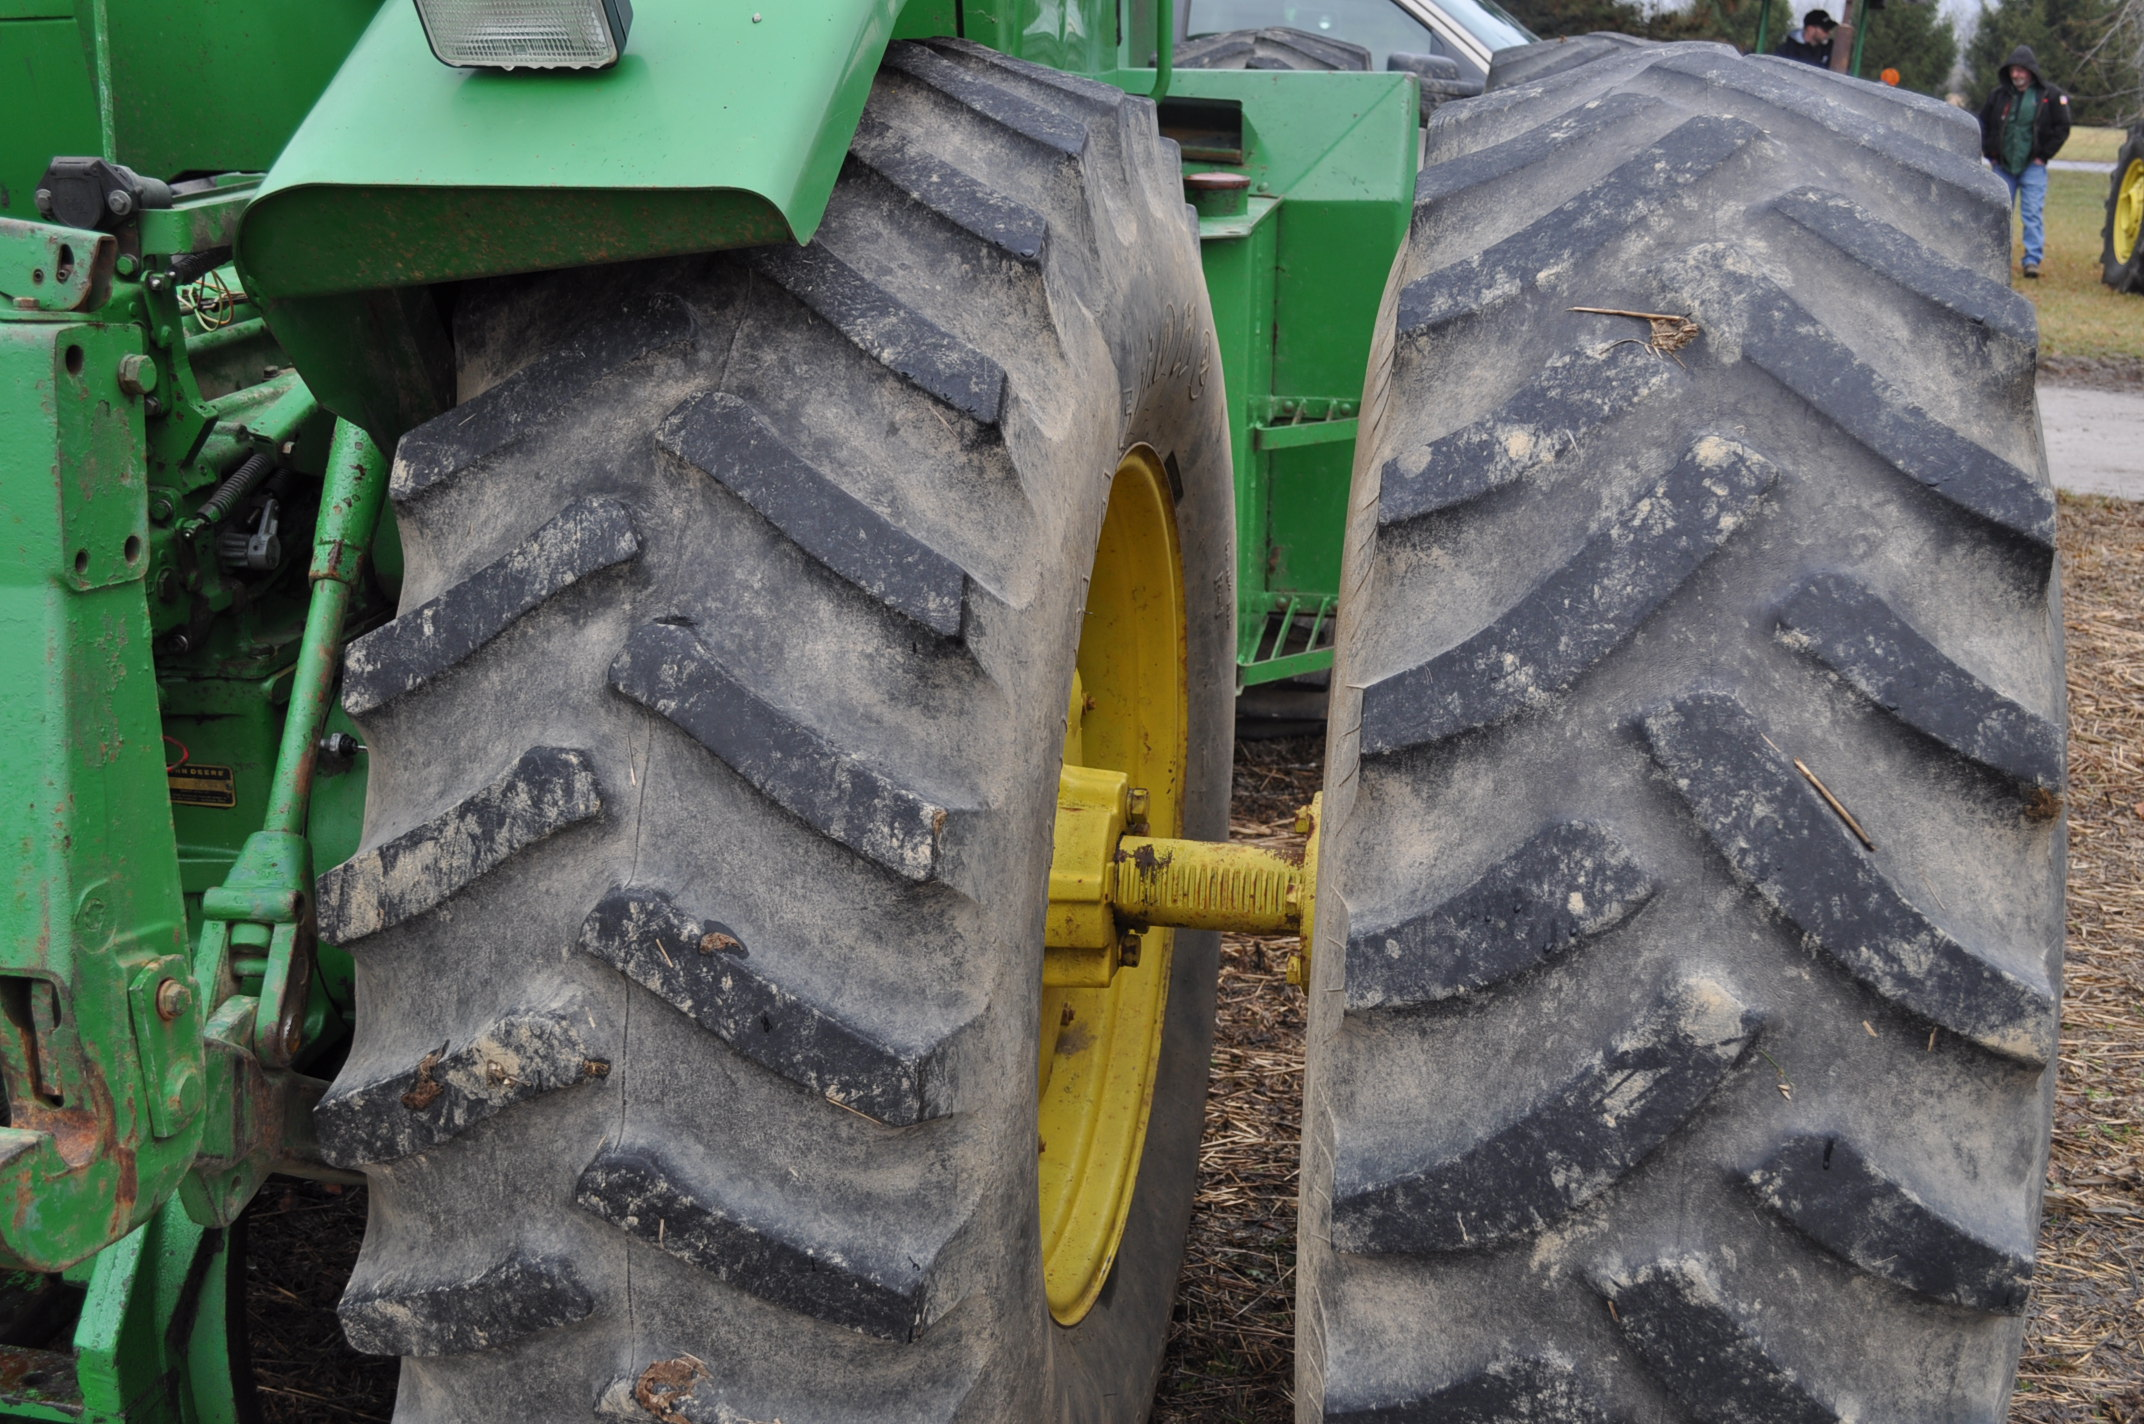 John Deere 8430 tractor, 4WD, diesel, 20.8-34 duals, CHA, Quad range, 3 hyd remotes, 1000 pto, 3 pt, - Image 7 of 19